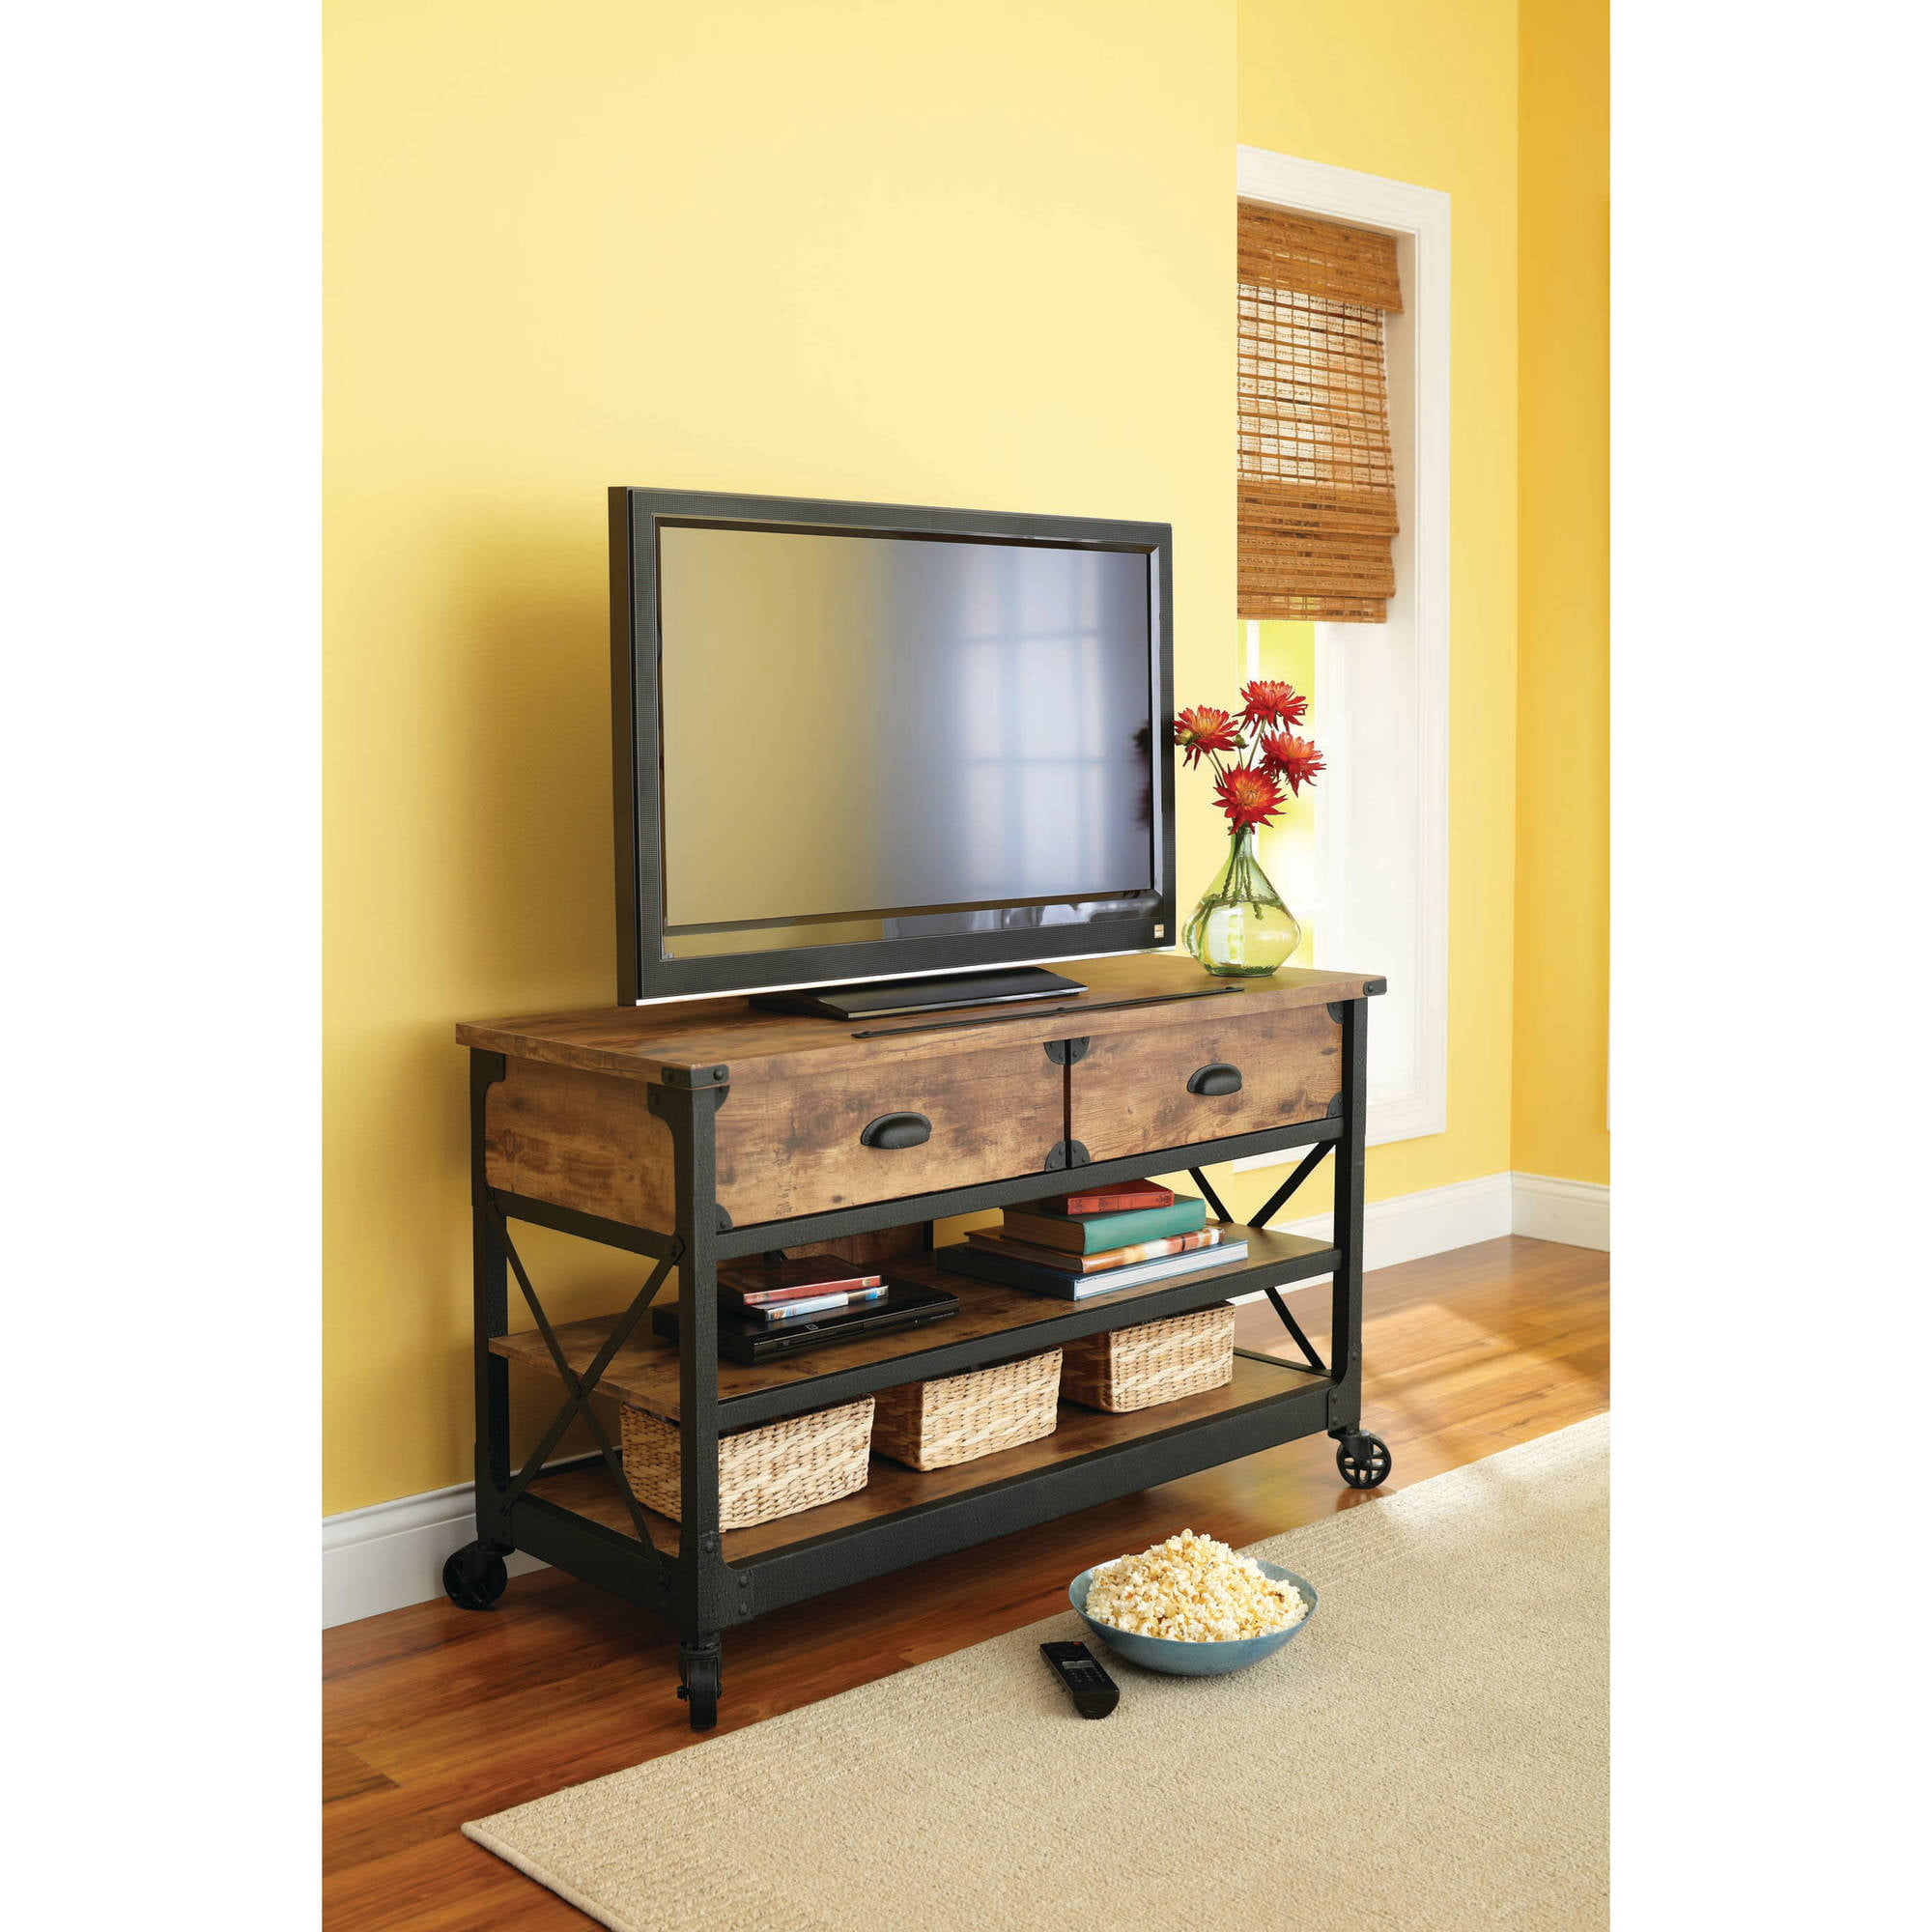 Better Homes And Gardens Rustic Country Antiqued Black/Pine Panel TV Stand  For TVs Up To 52